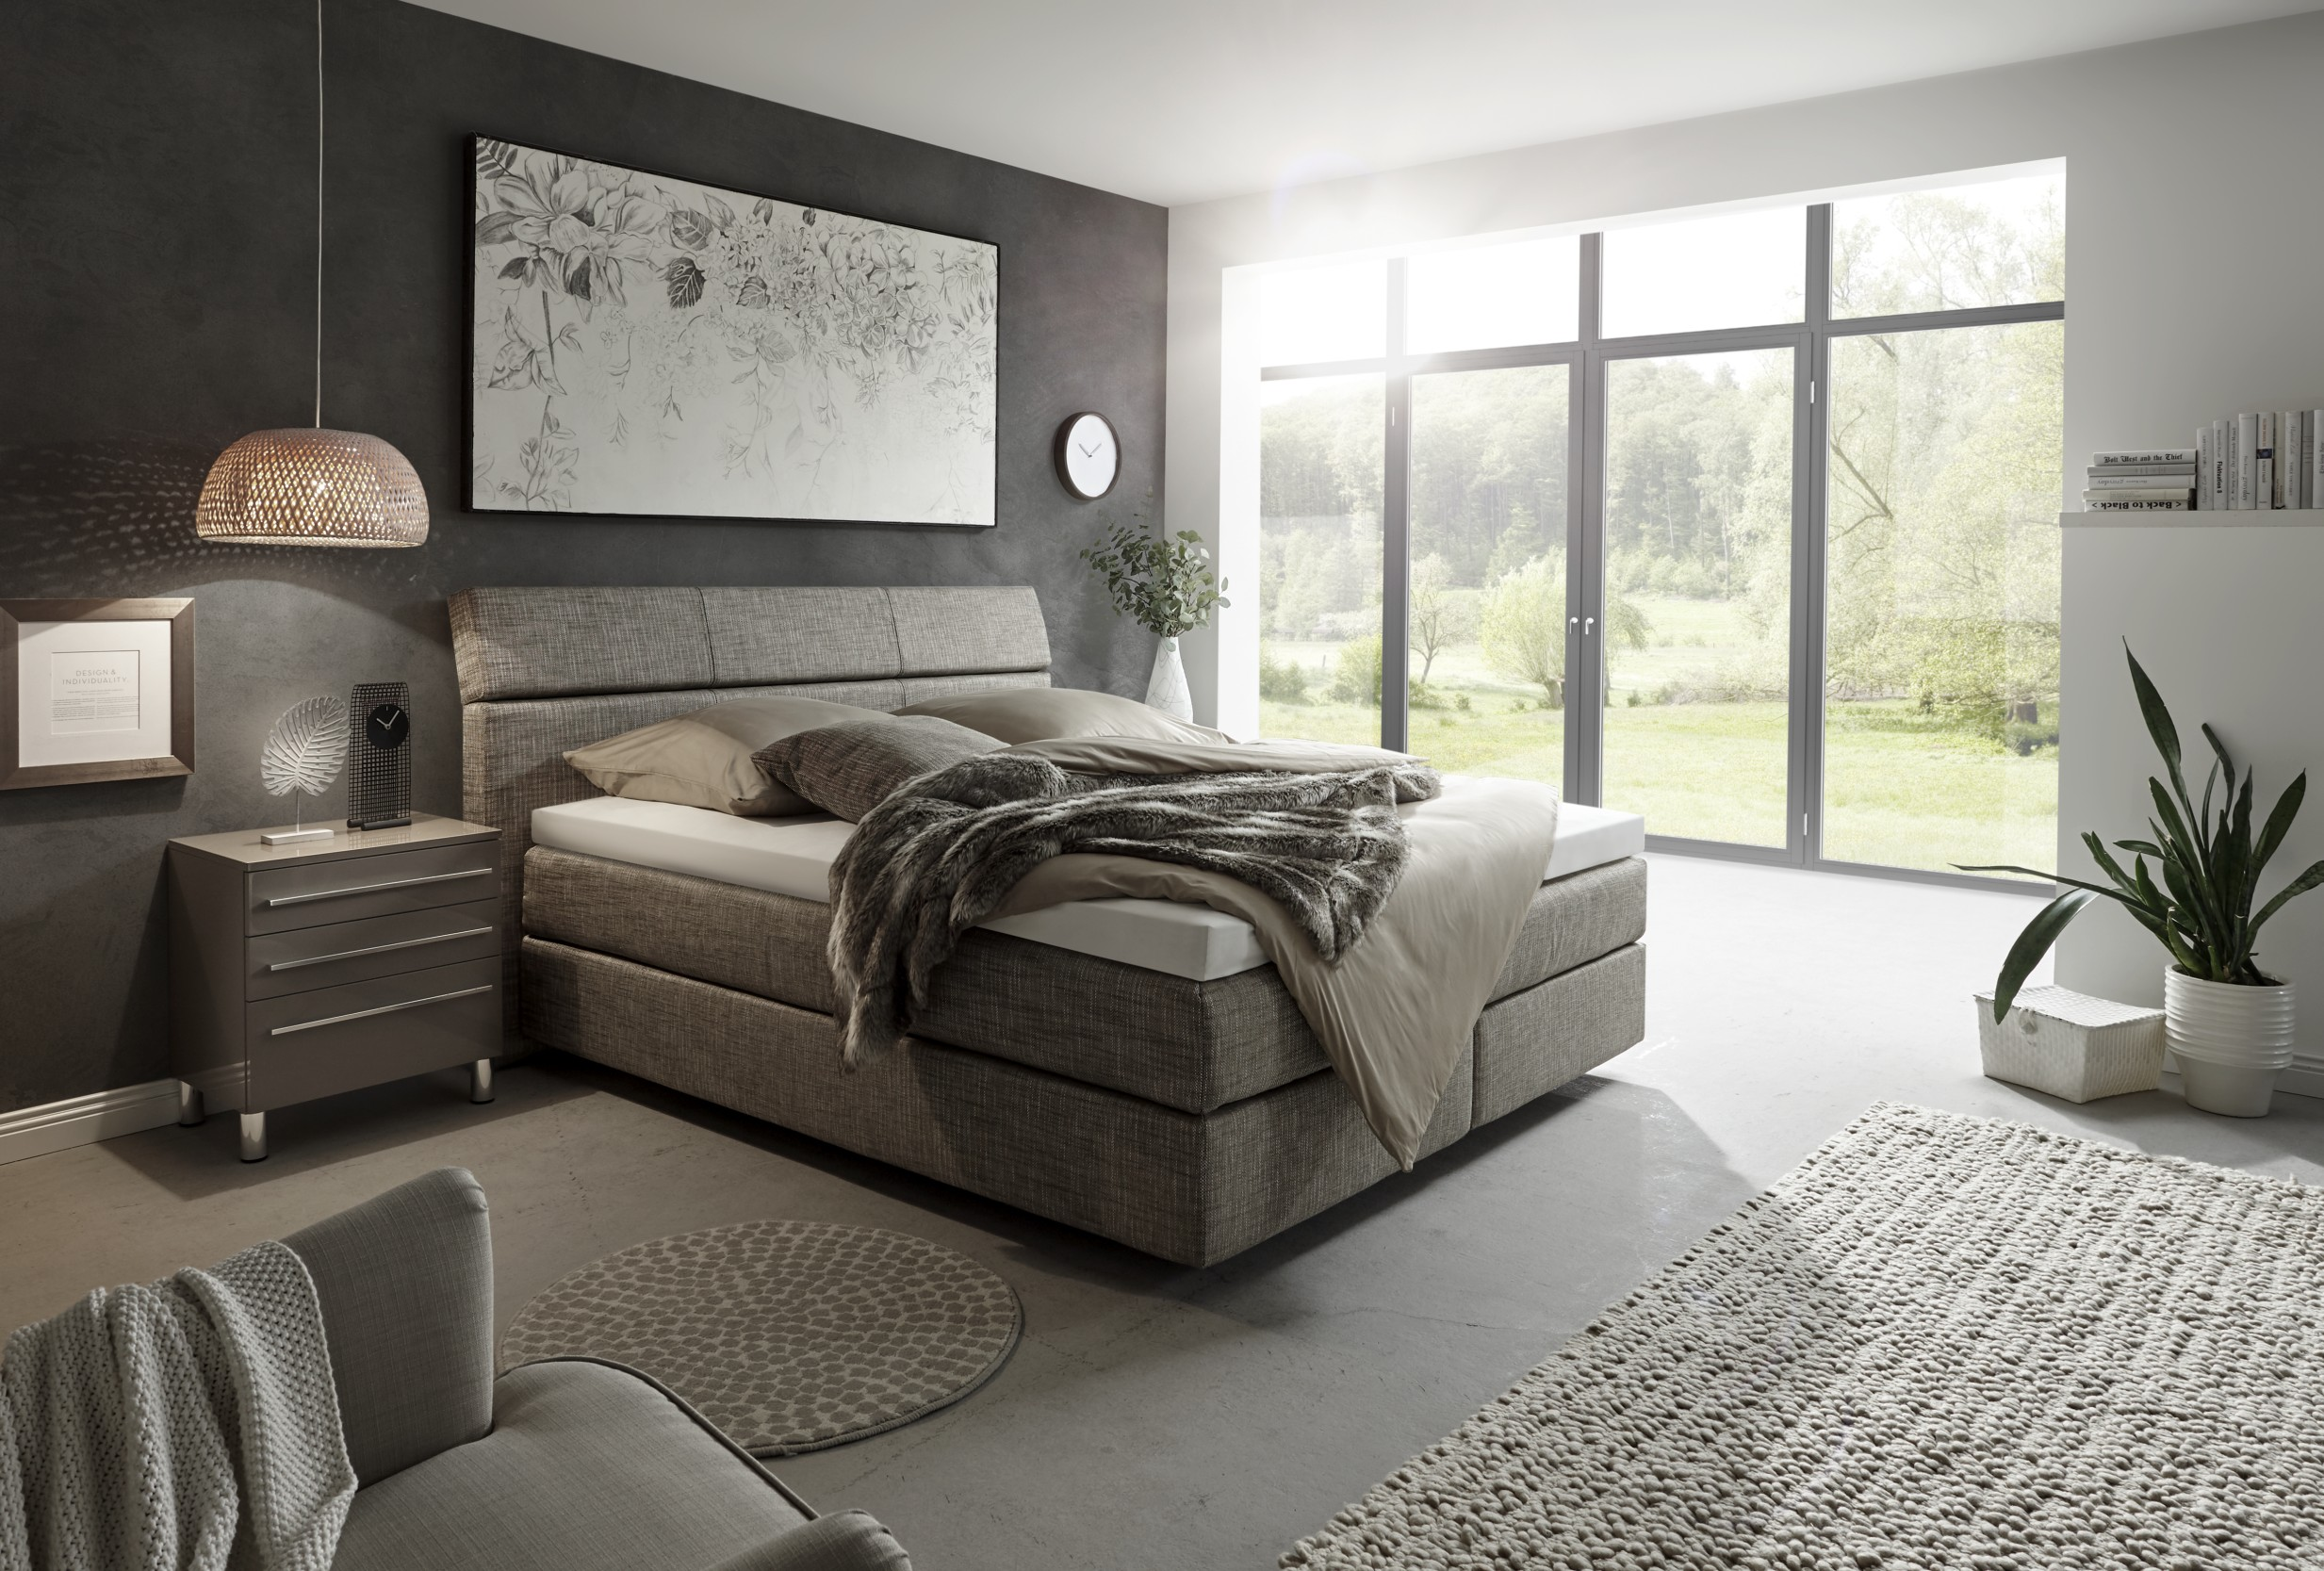 FEMIRA_boxspring_bedrooms_couture cadeo_8690-02-AM